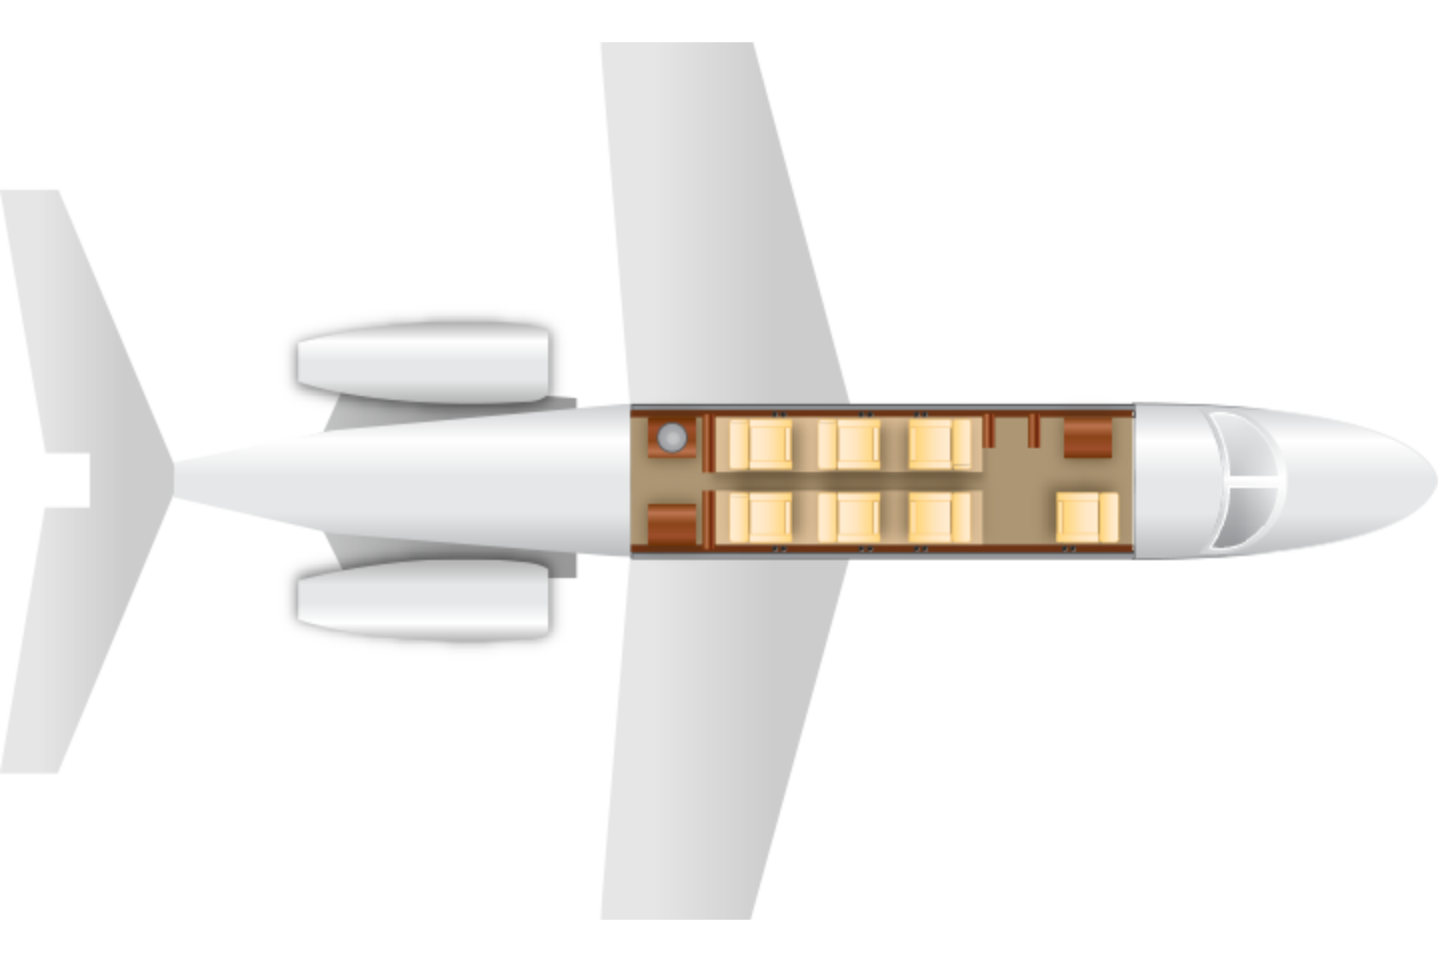 citation-cj4-transparent-1421340182.png Floor Plan View